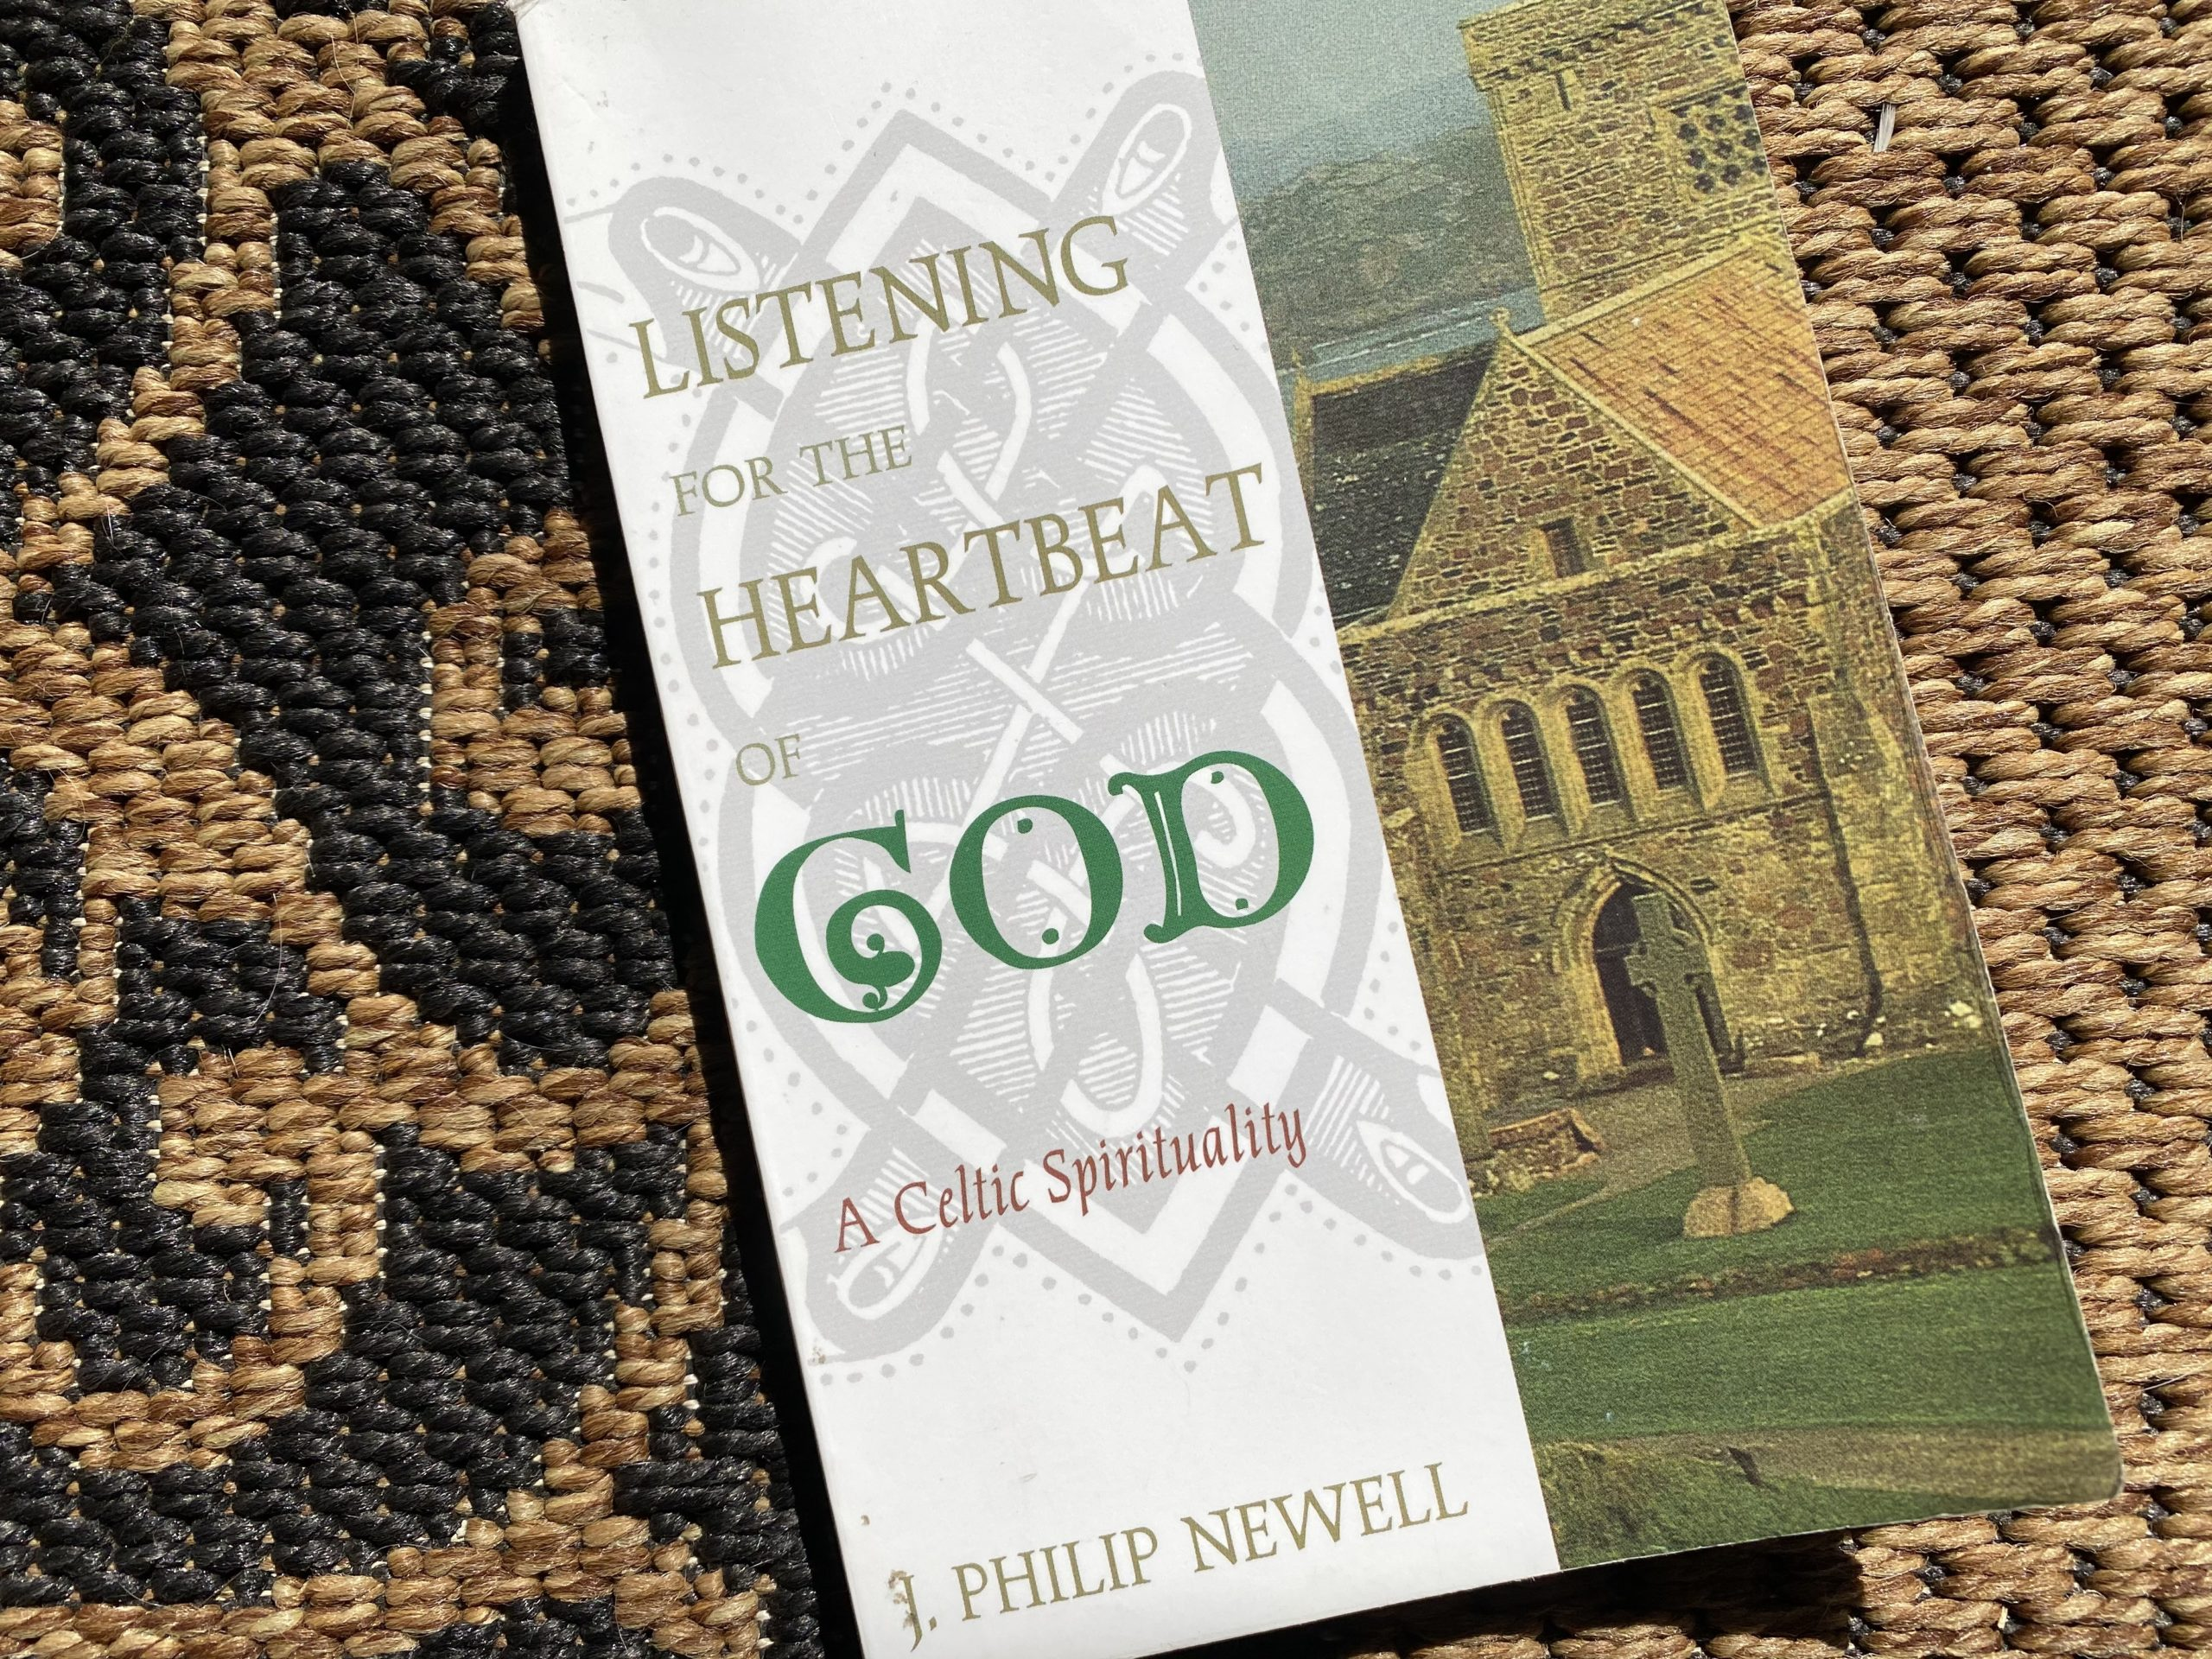 Book Review: Listening for the Heartbeat of God by Rev Dr. J. Philip Newell